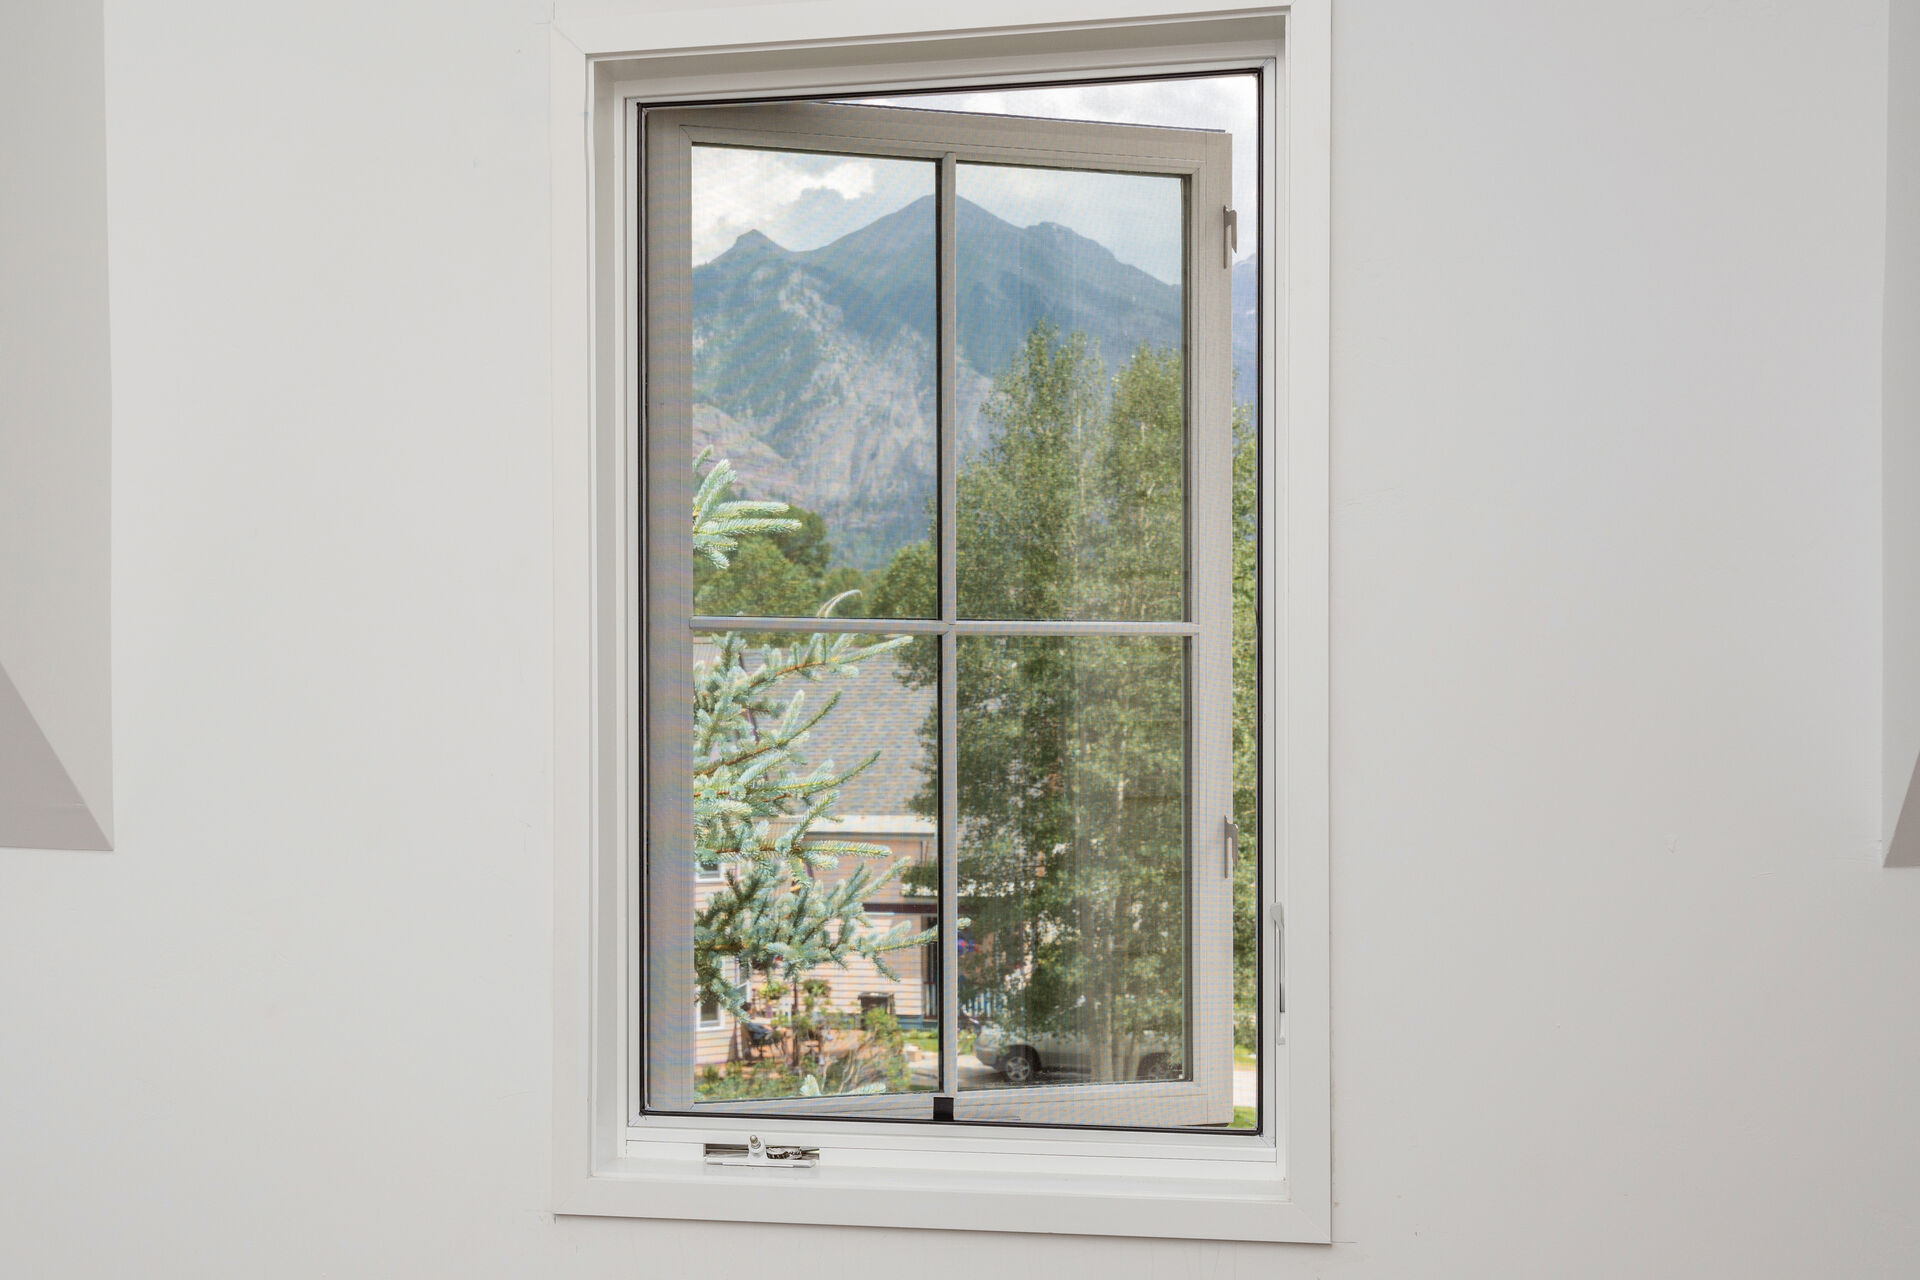 Window Looking out at the Mountains in Telluride